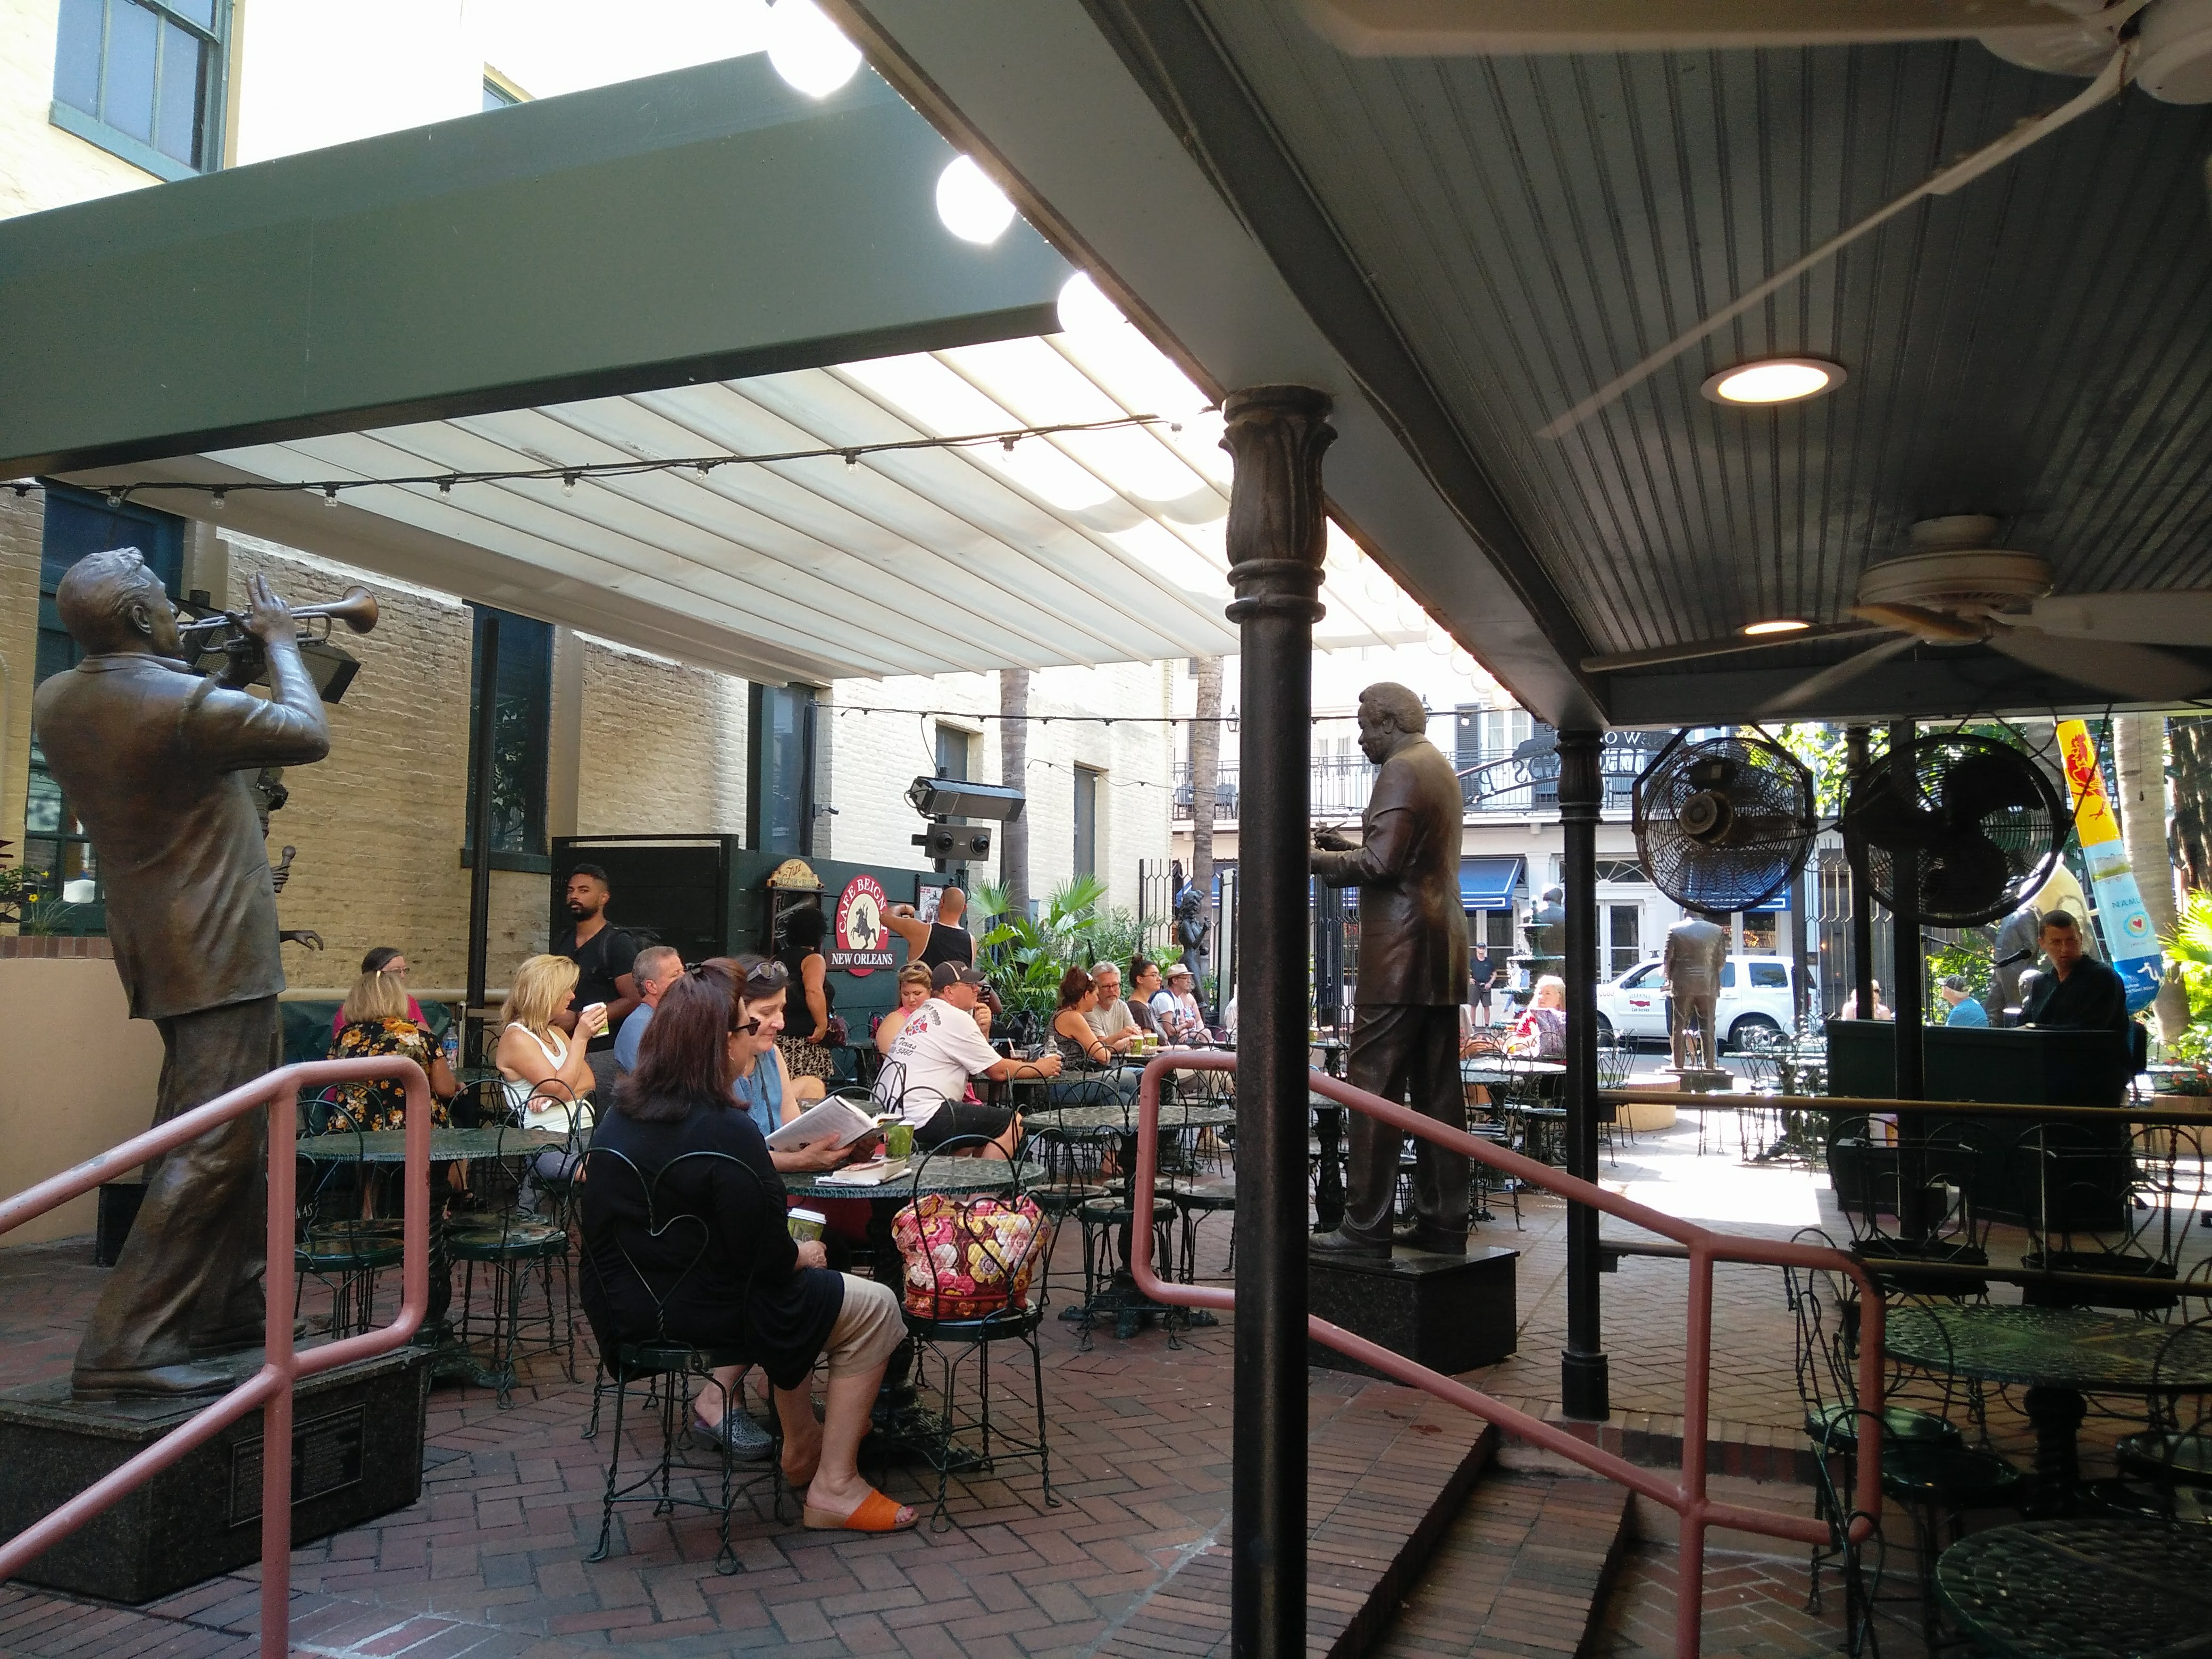 Seating area for Cafe Beignet on Bourbon Street